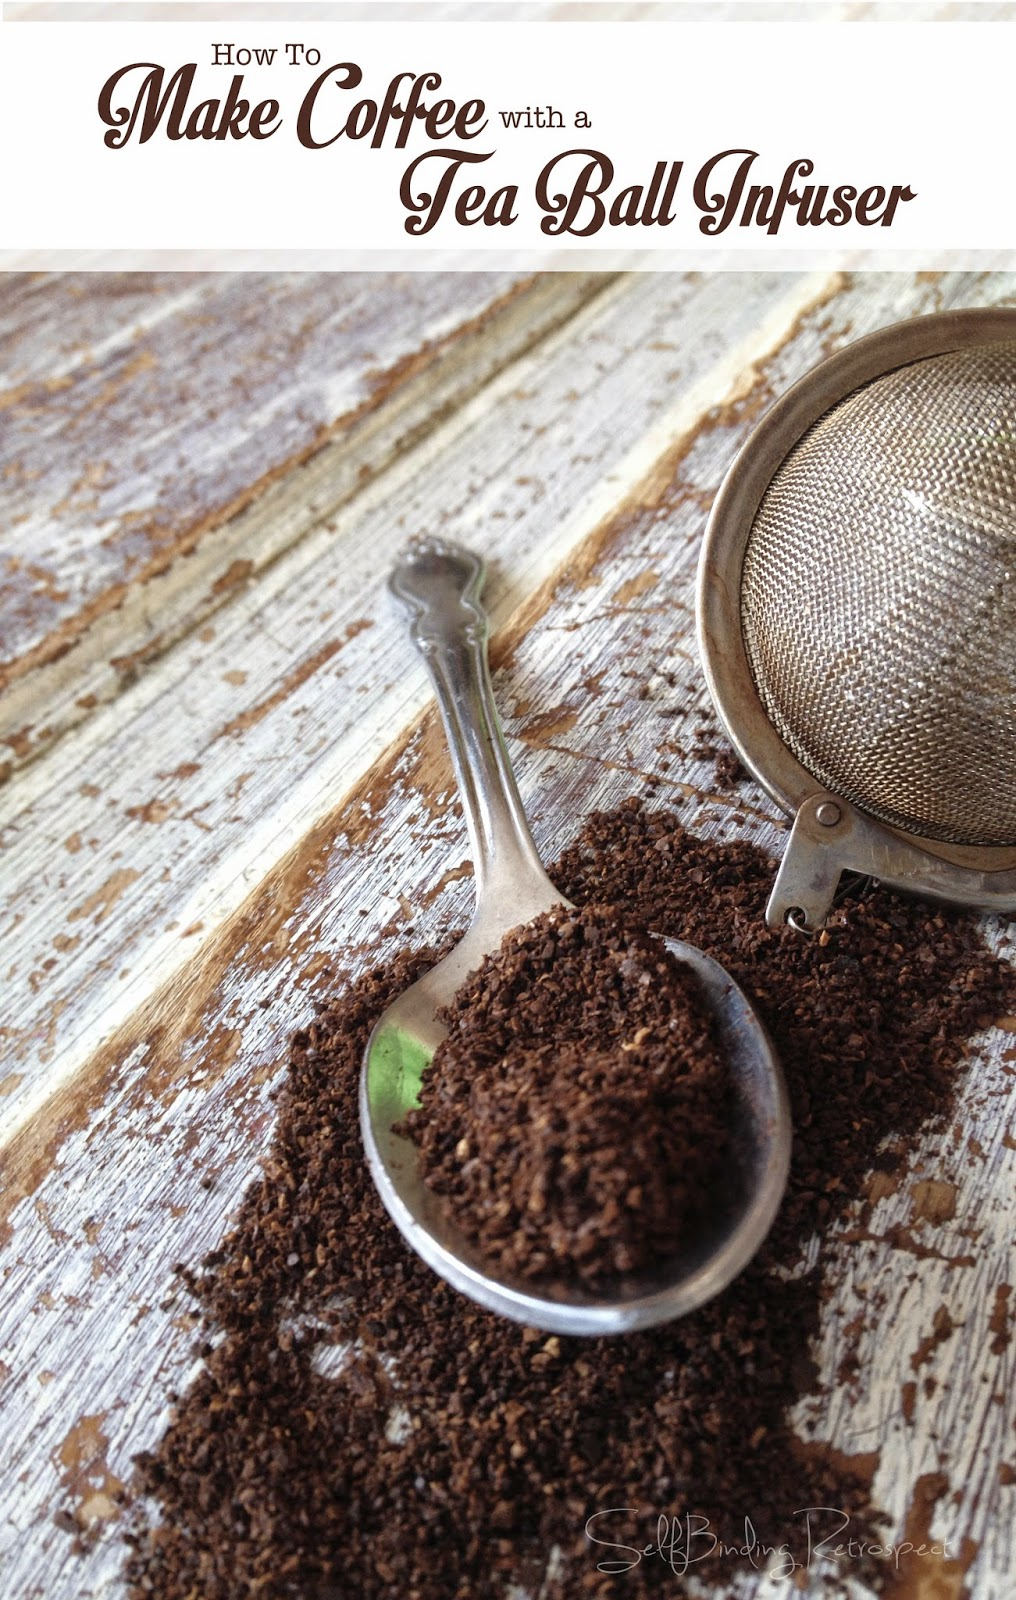 How to make coffee with a tea ball infuser!